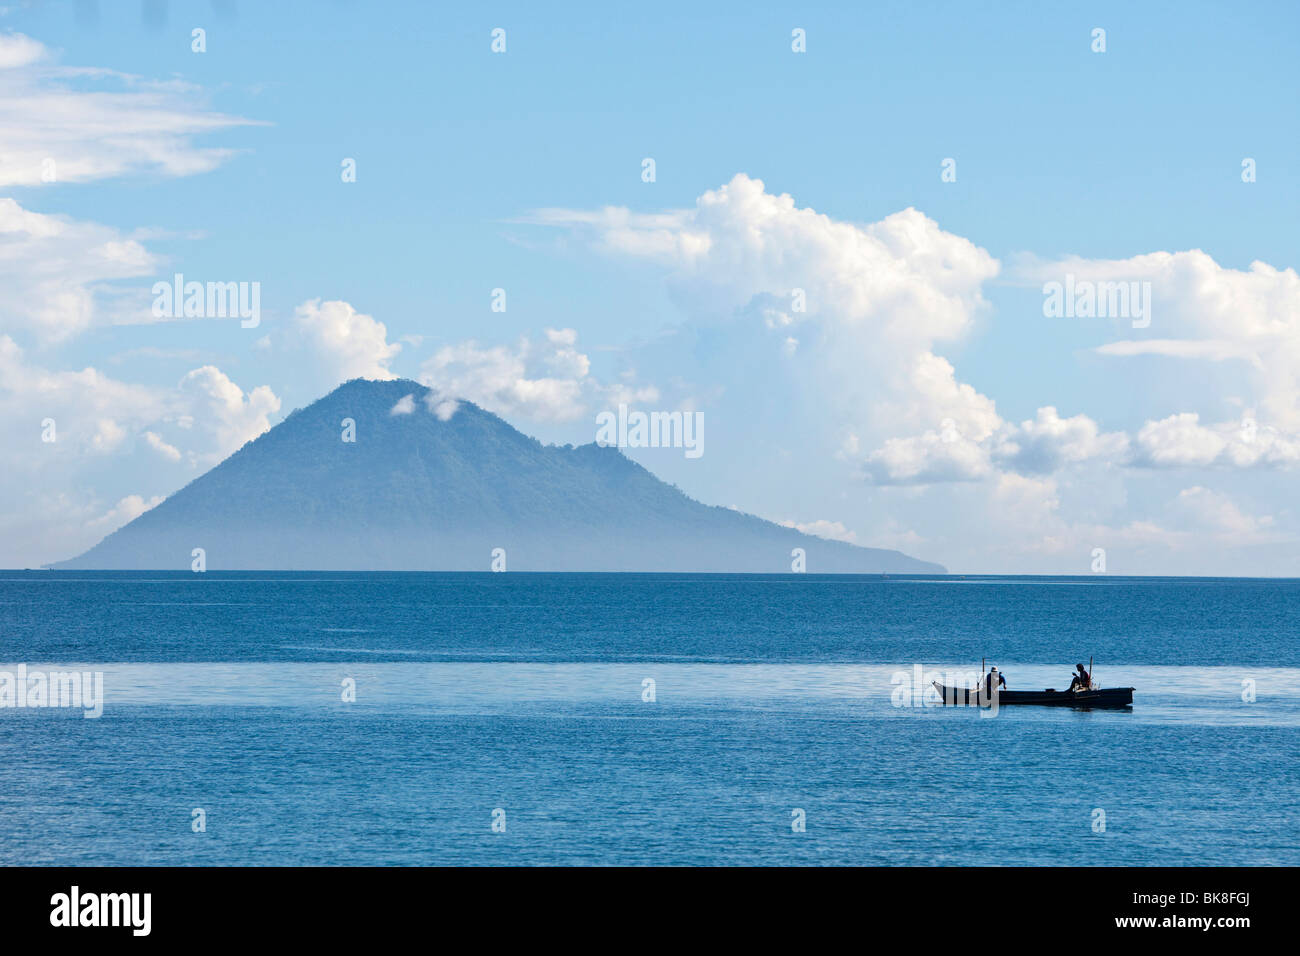 Diving boat in the Bunaken Marine Park in front of Mt Manado Tua, North Sulawesi, Indonesia - Stock Image